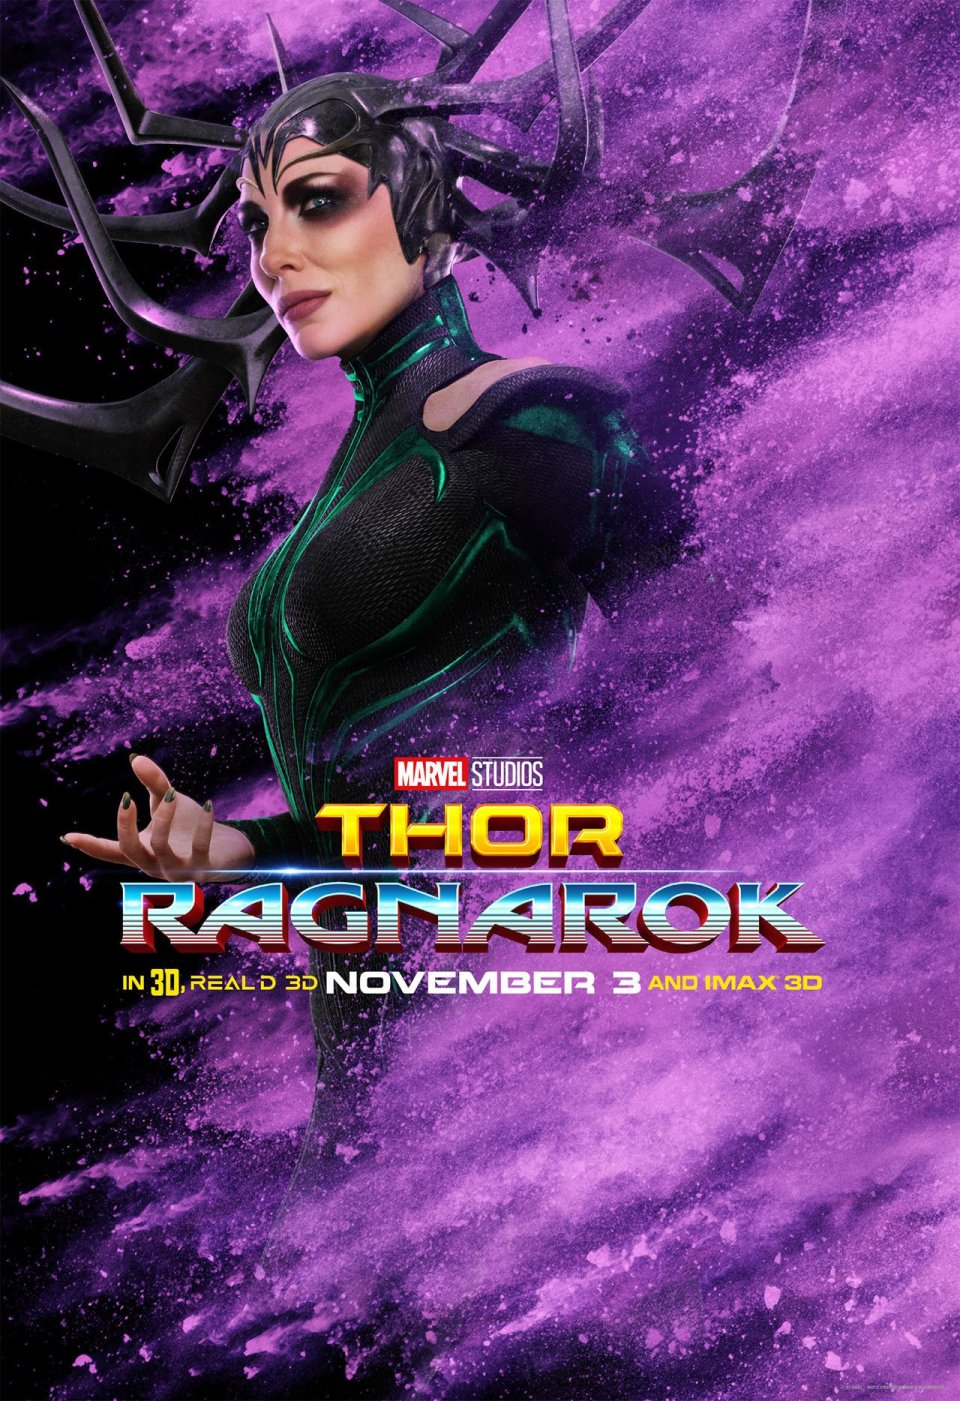 8-wild-thor-ragnarok-character-posters-give-the-heroes-and-villains-an-explosion-of-color4.jpeg